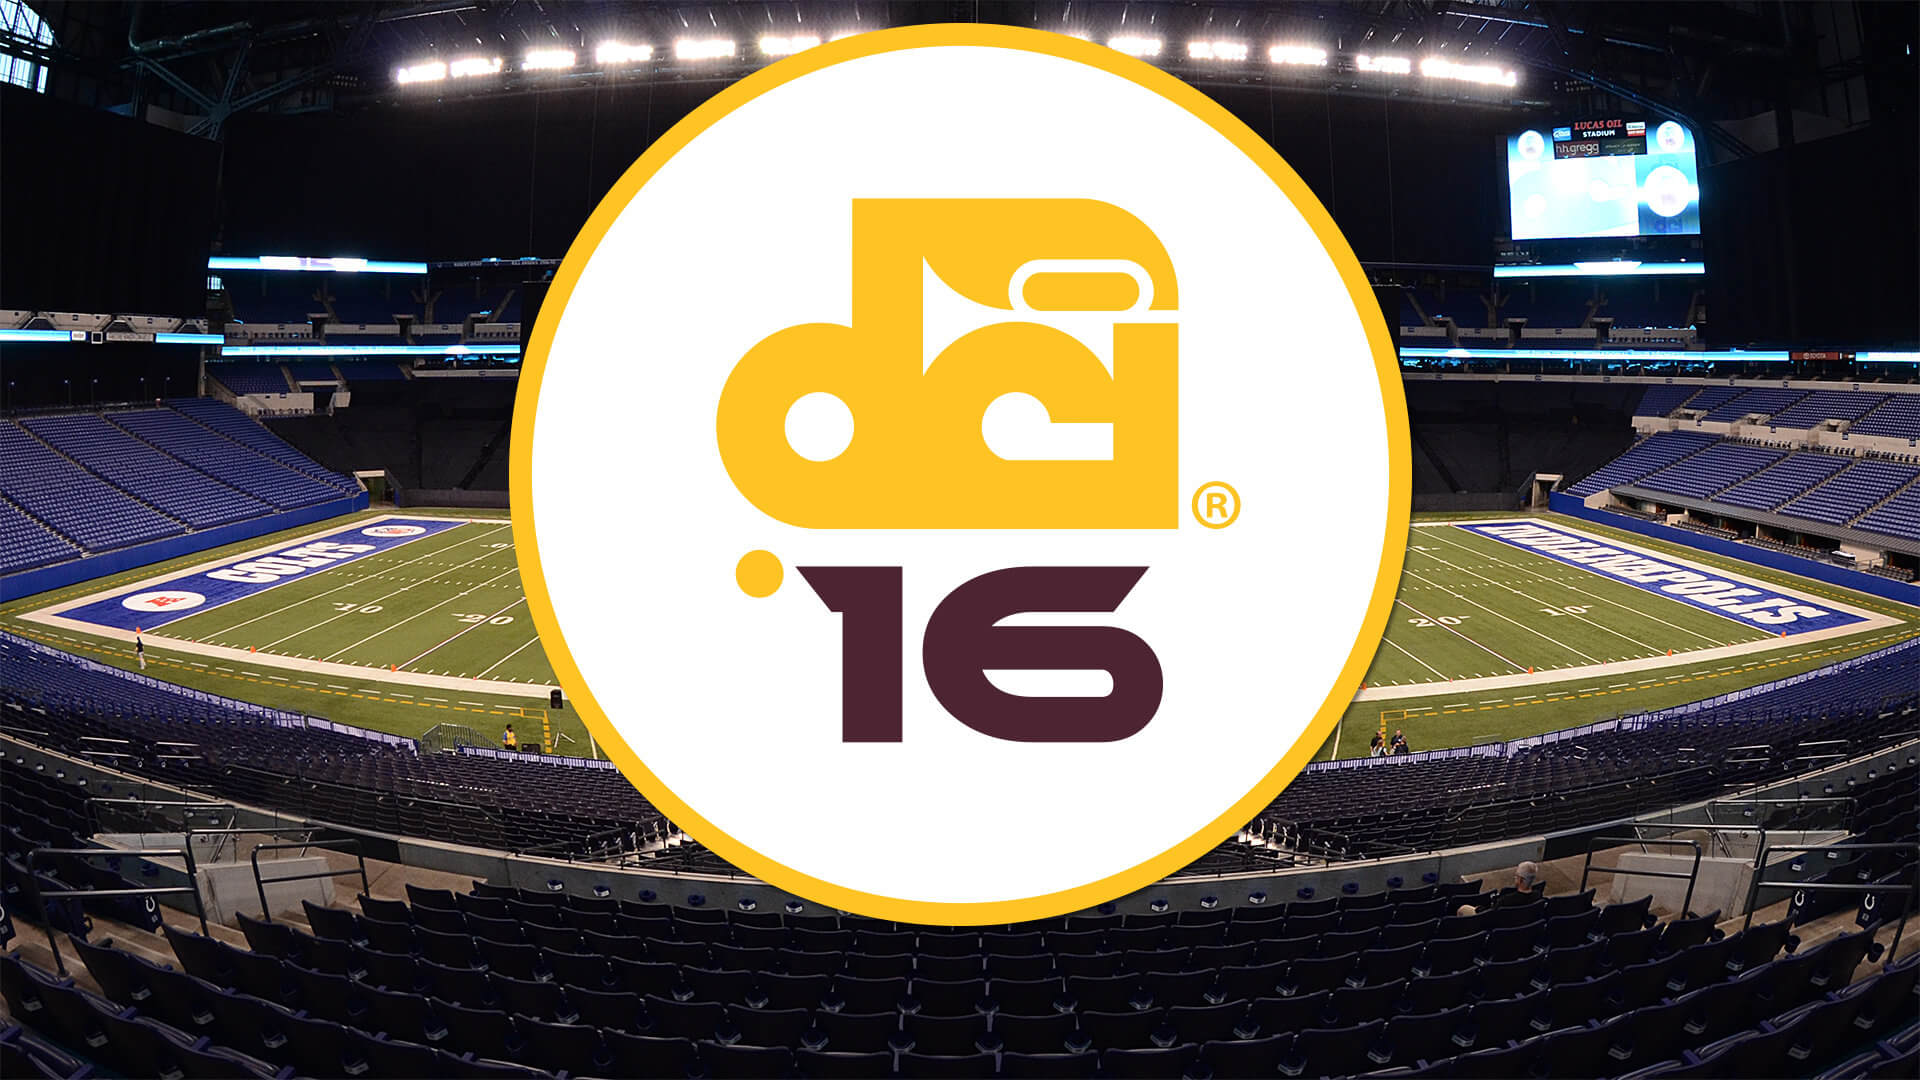 2016 Drum Corps International Tour Schedule